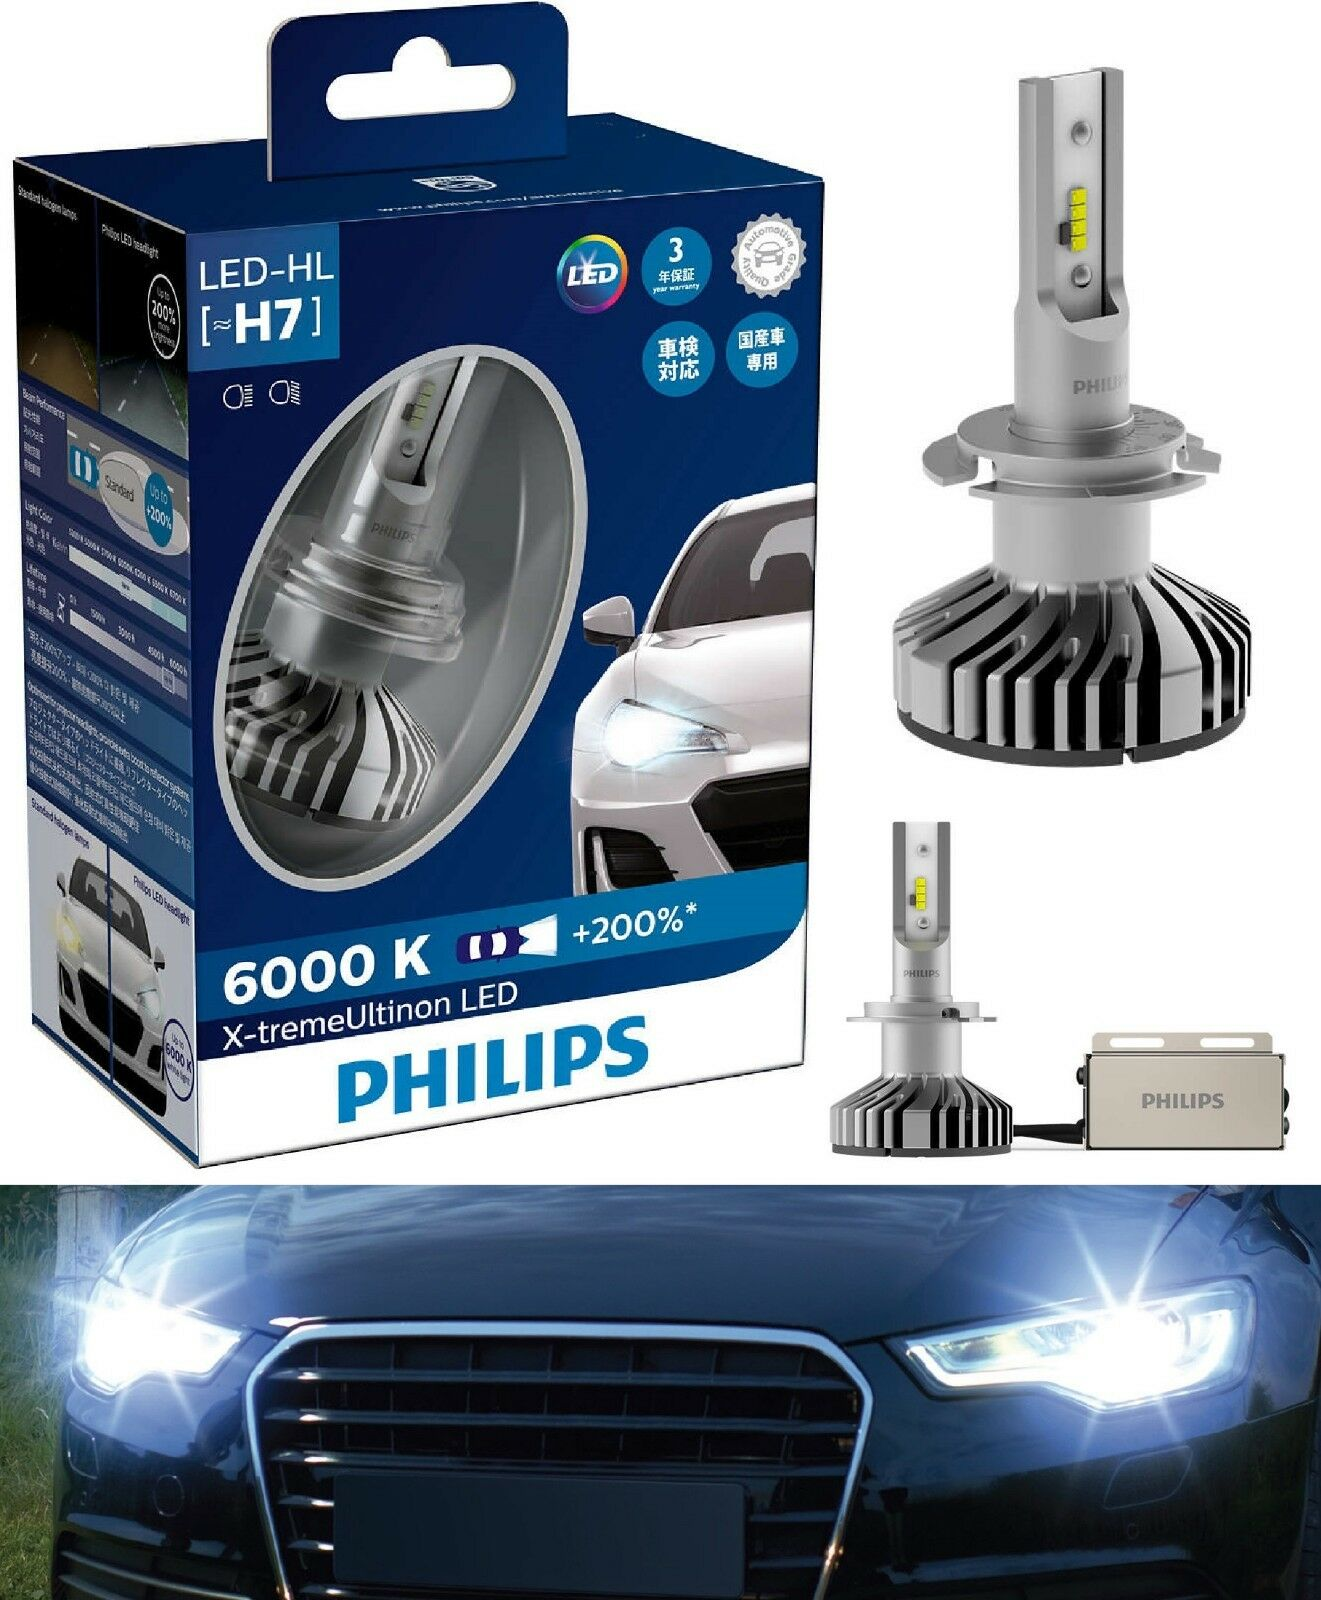 2 LAMPADINE H7 X-TREME VISION PHILIPS BMW 3 TOURING 320 D XDRIVE KW:147 2013/> 12